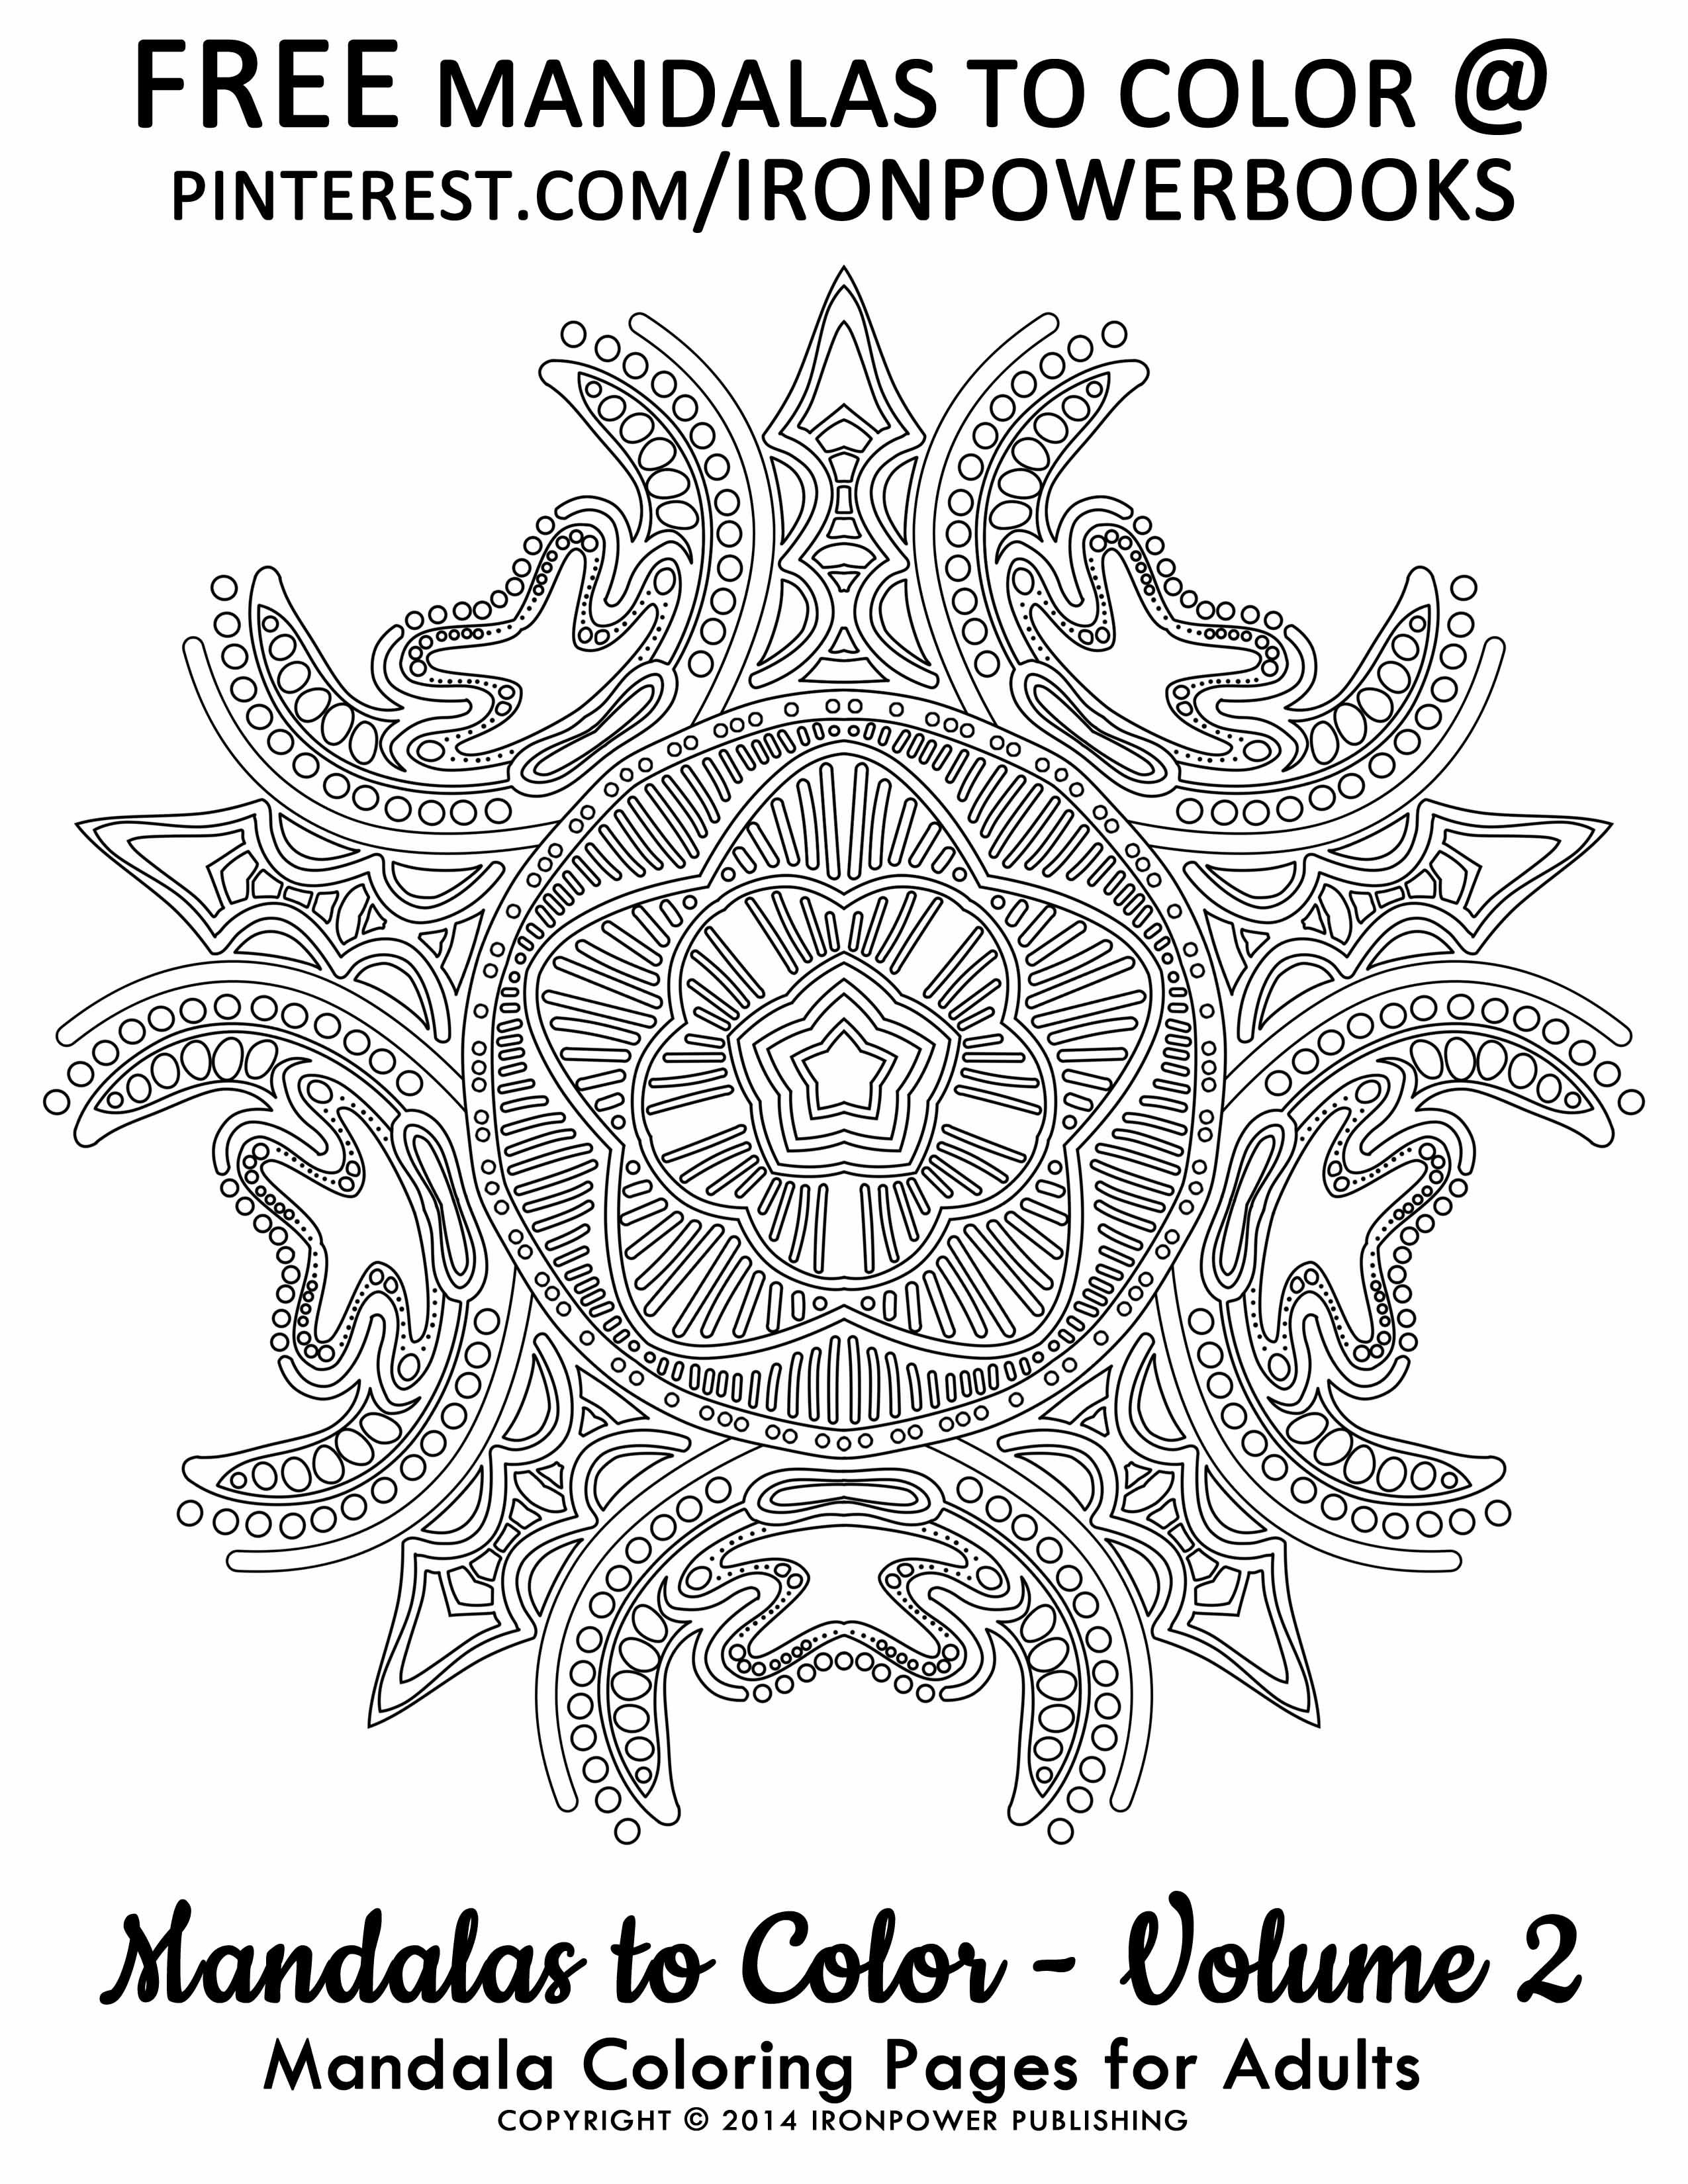 Mandala coloring pages amazon -  Free Coloring Pages For Adults Mandalas To Color Volume 2 Paperback Copy At